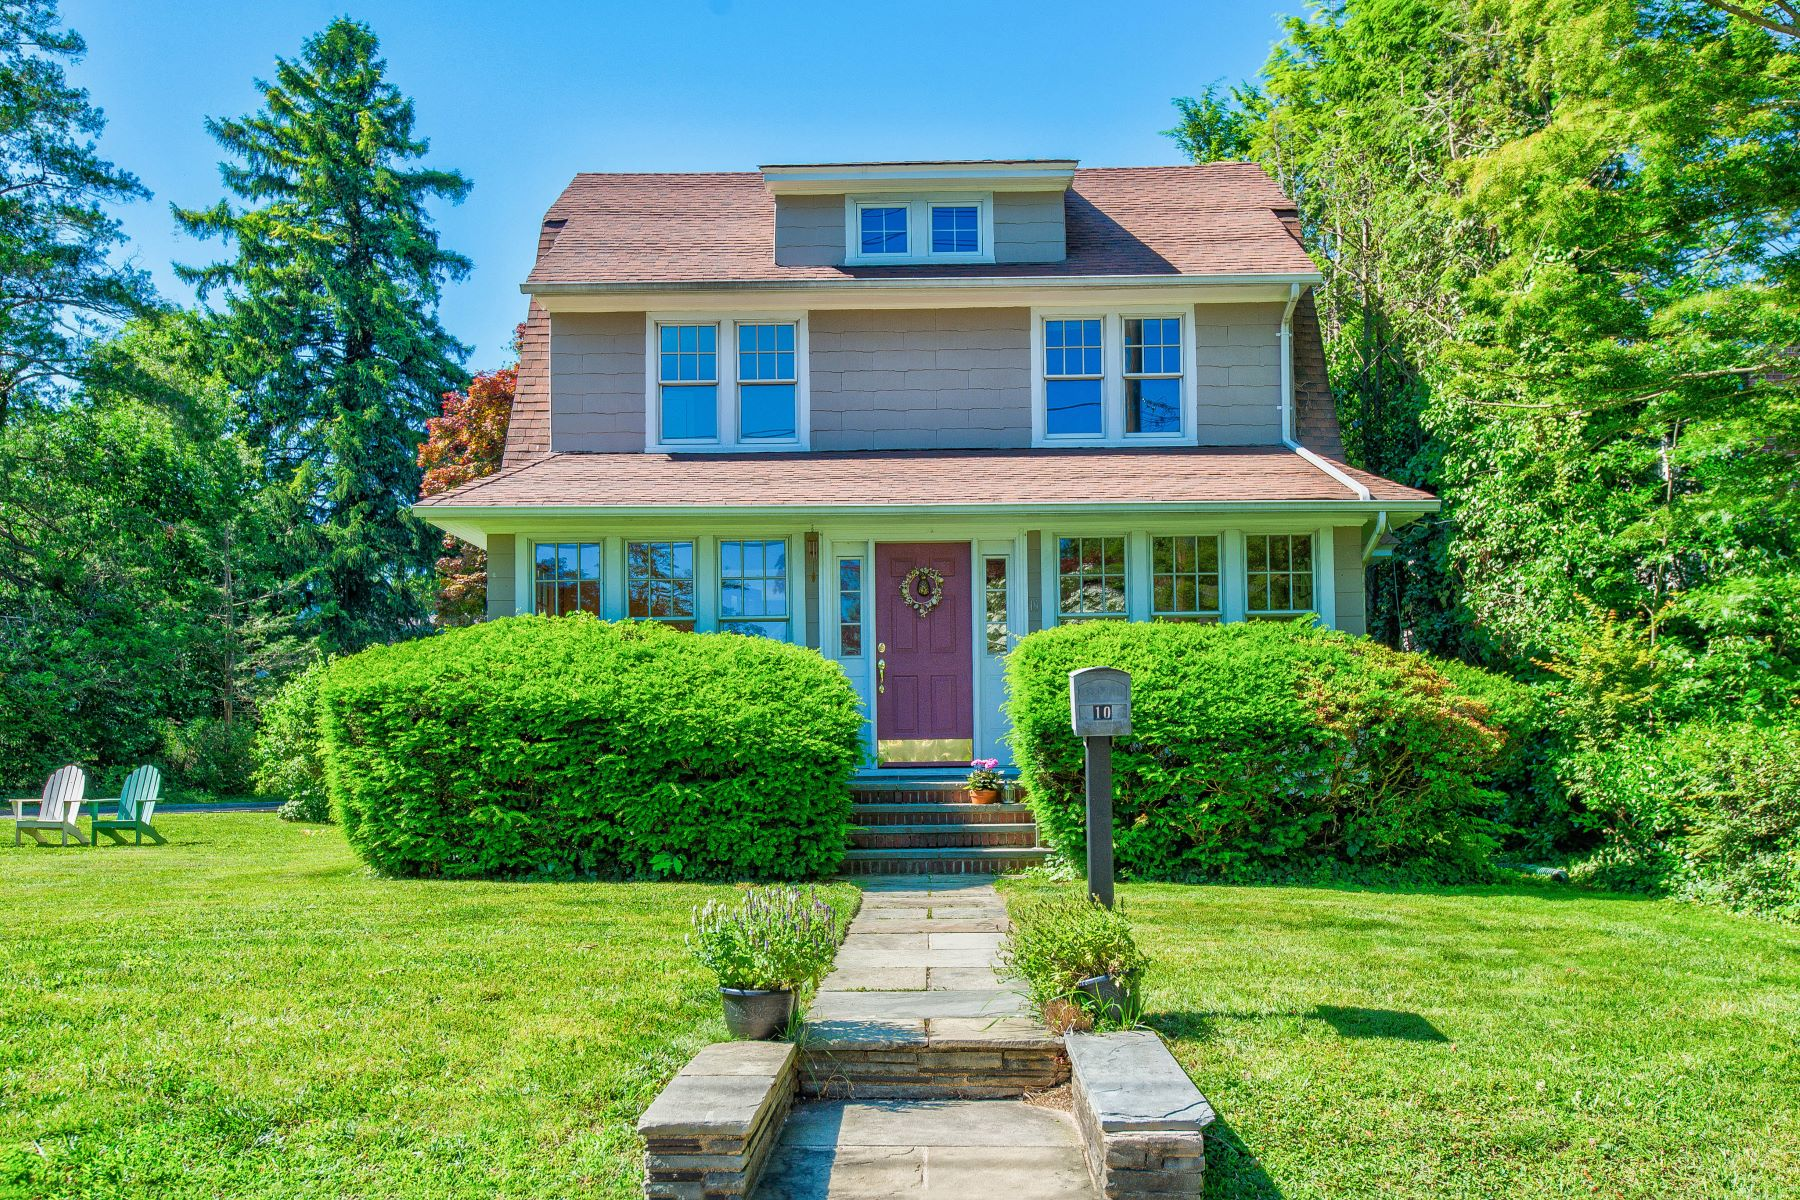 Single Family Homes for Sale at Glen Head 10 Townsend St Glen Head, New York 11545 United States